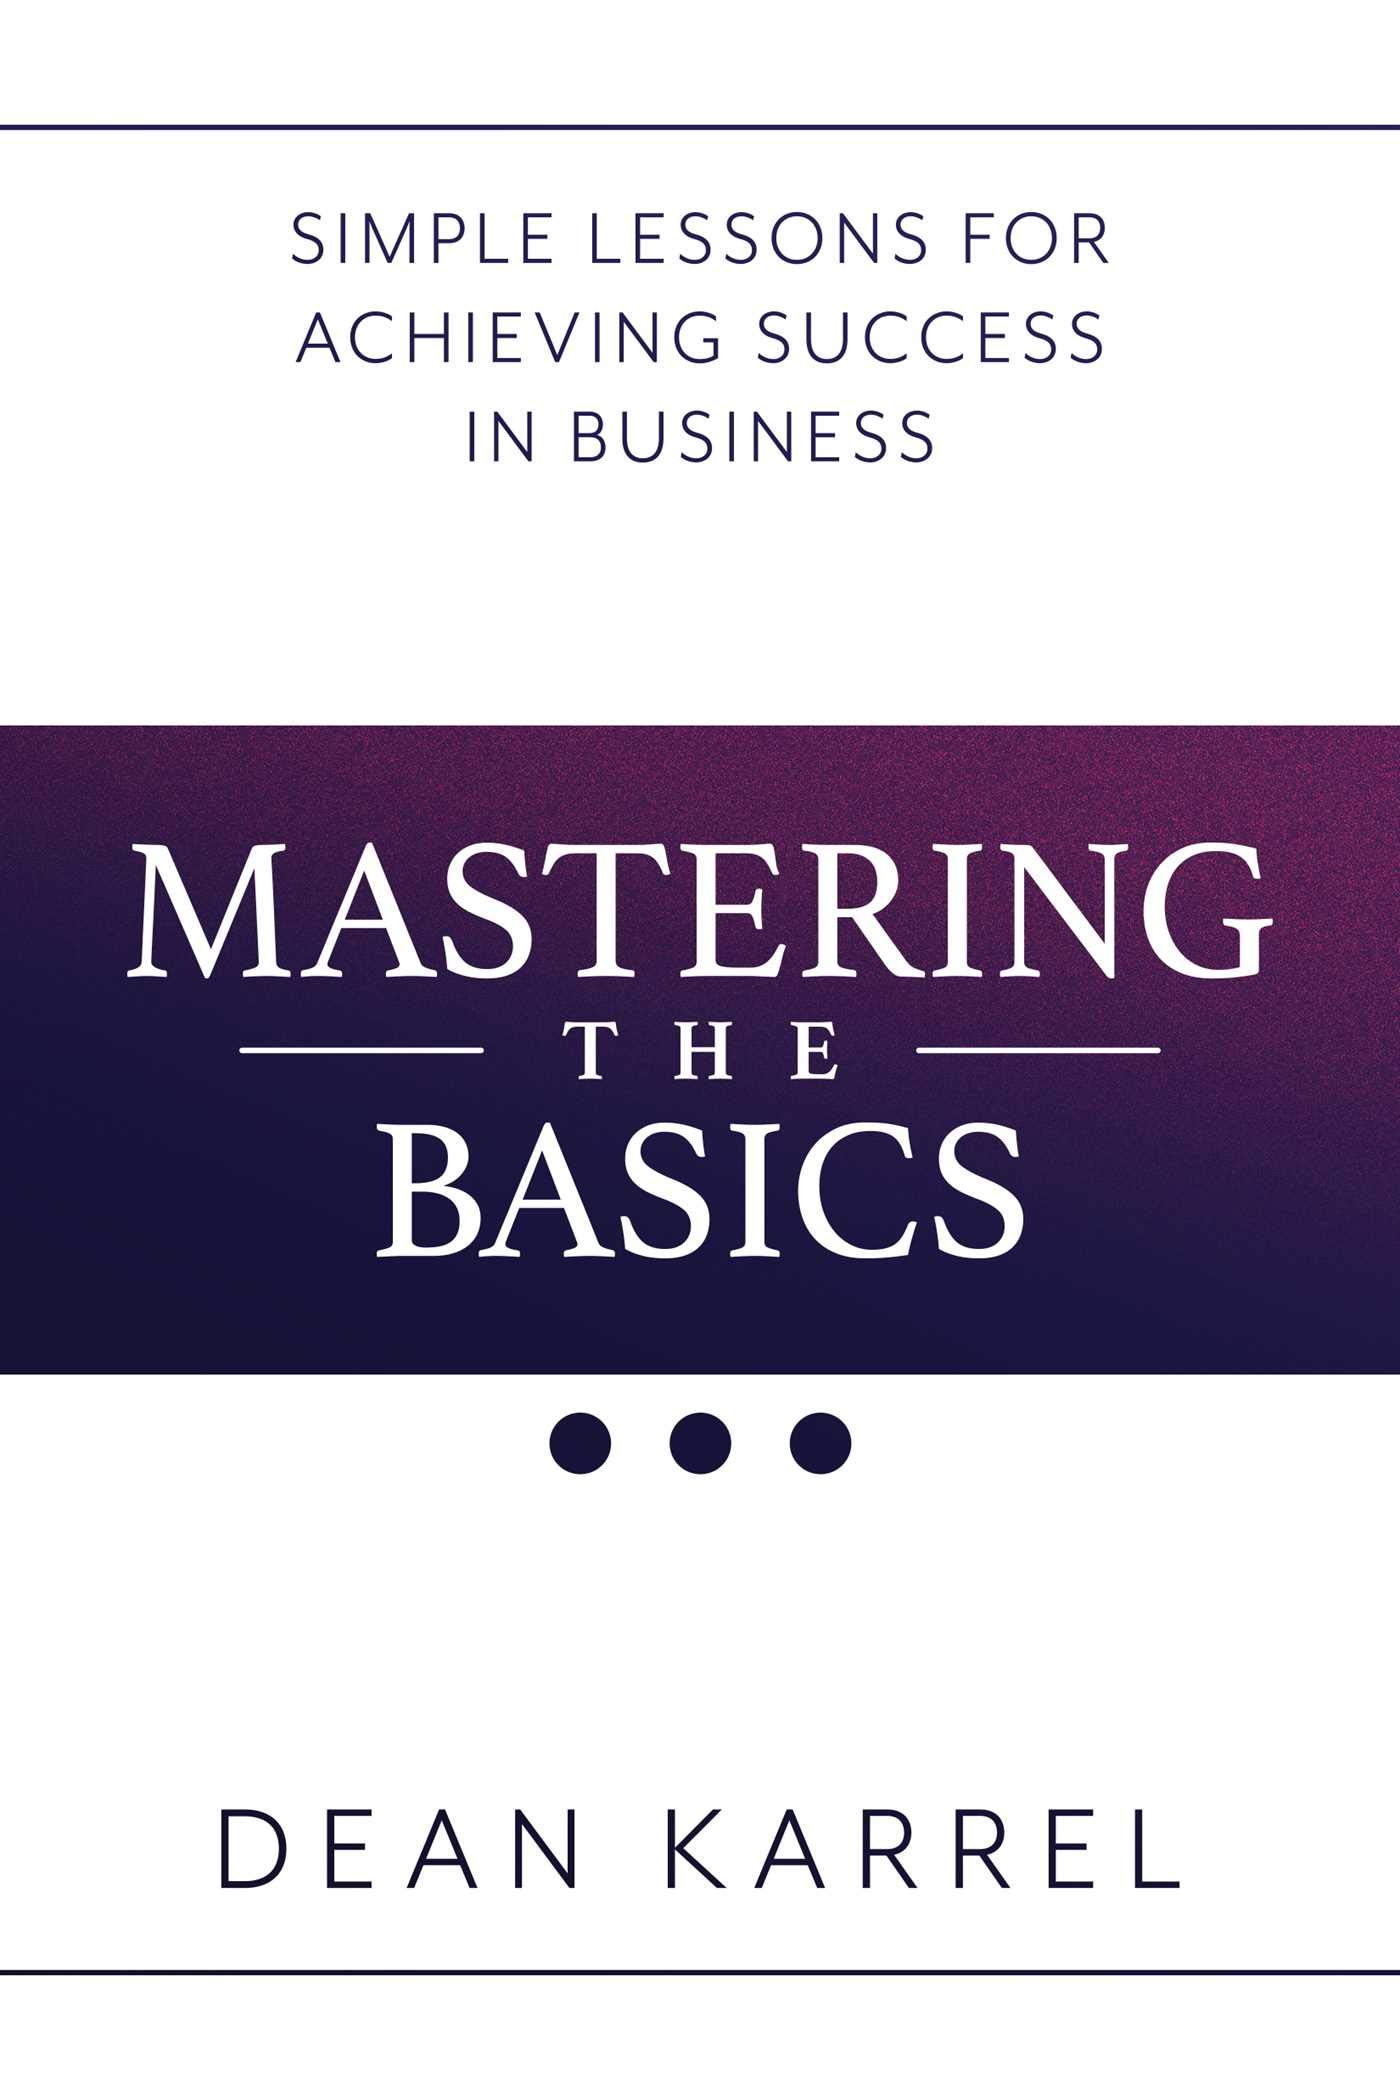 Mastering the Basics: Simple Lessons for Achieving Success